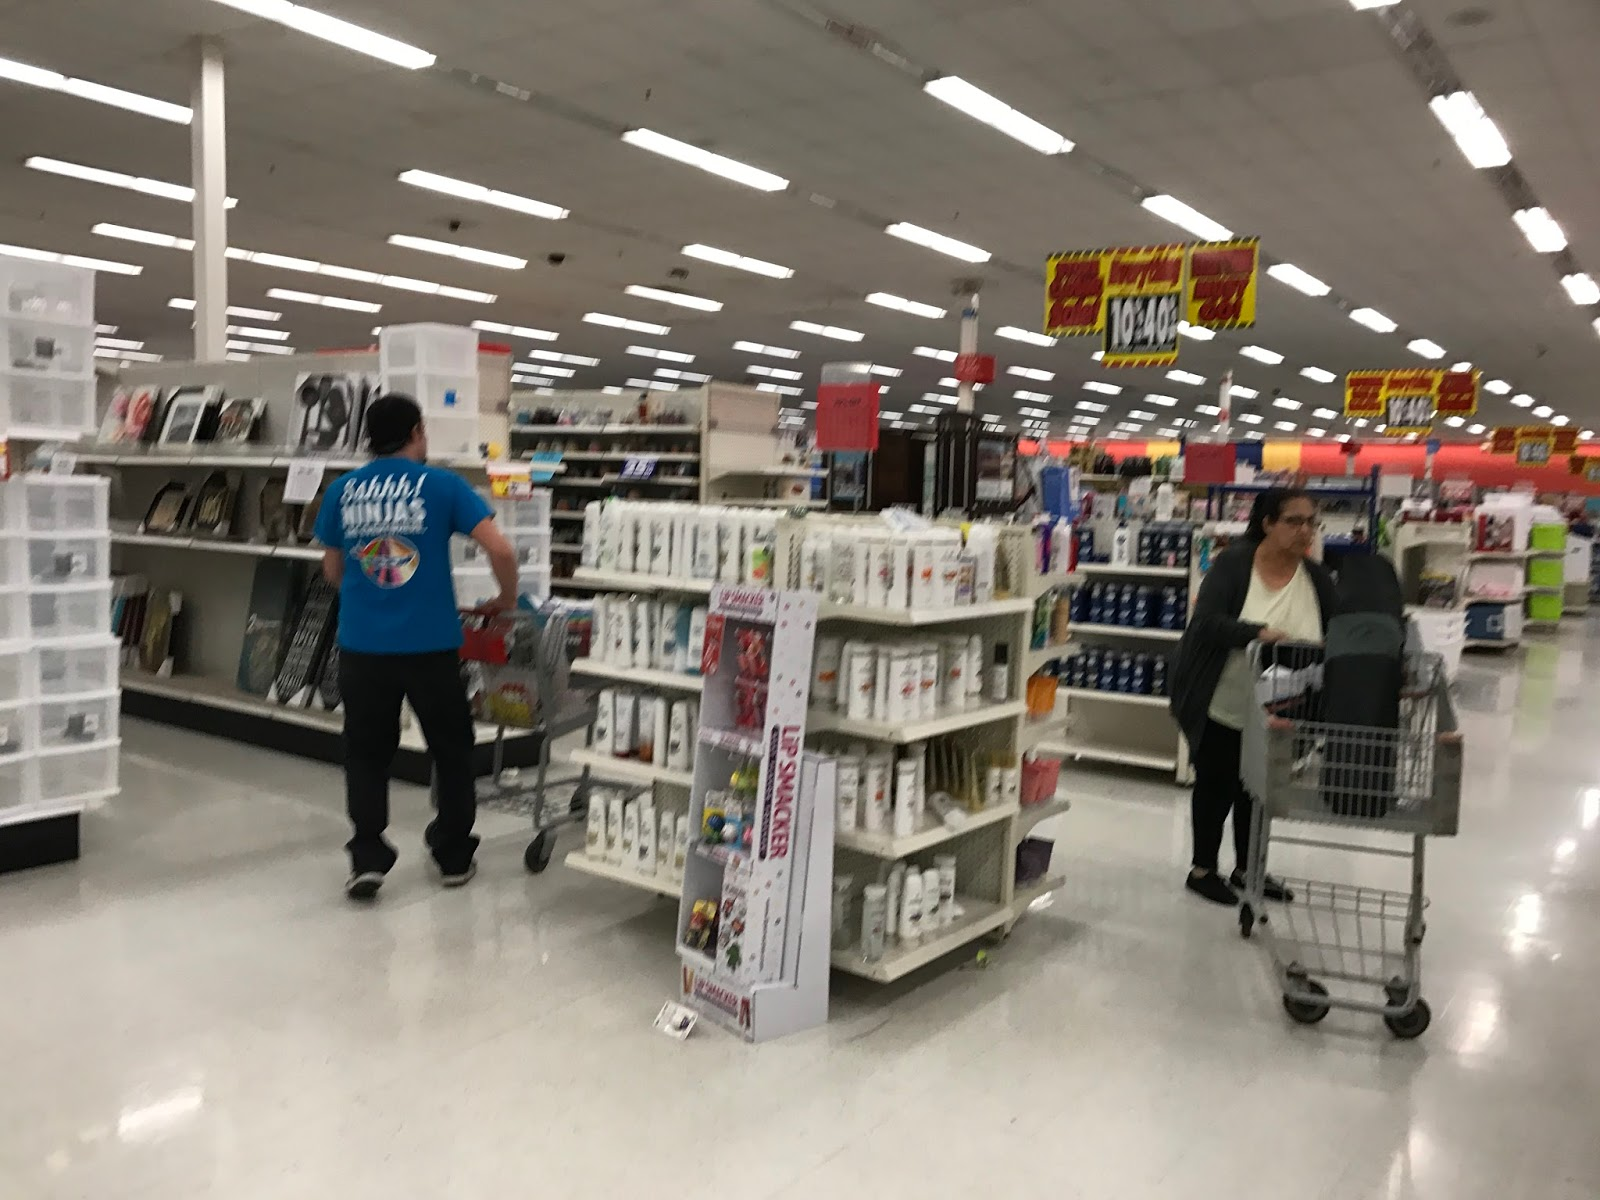 Retail stores for Kmart shirts for employees